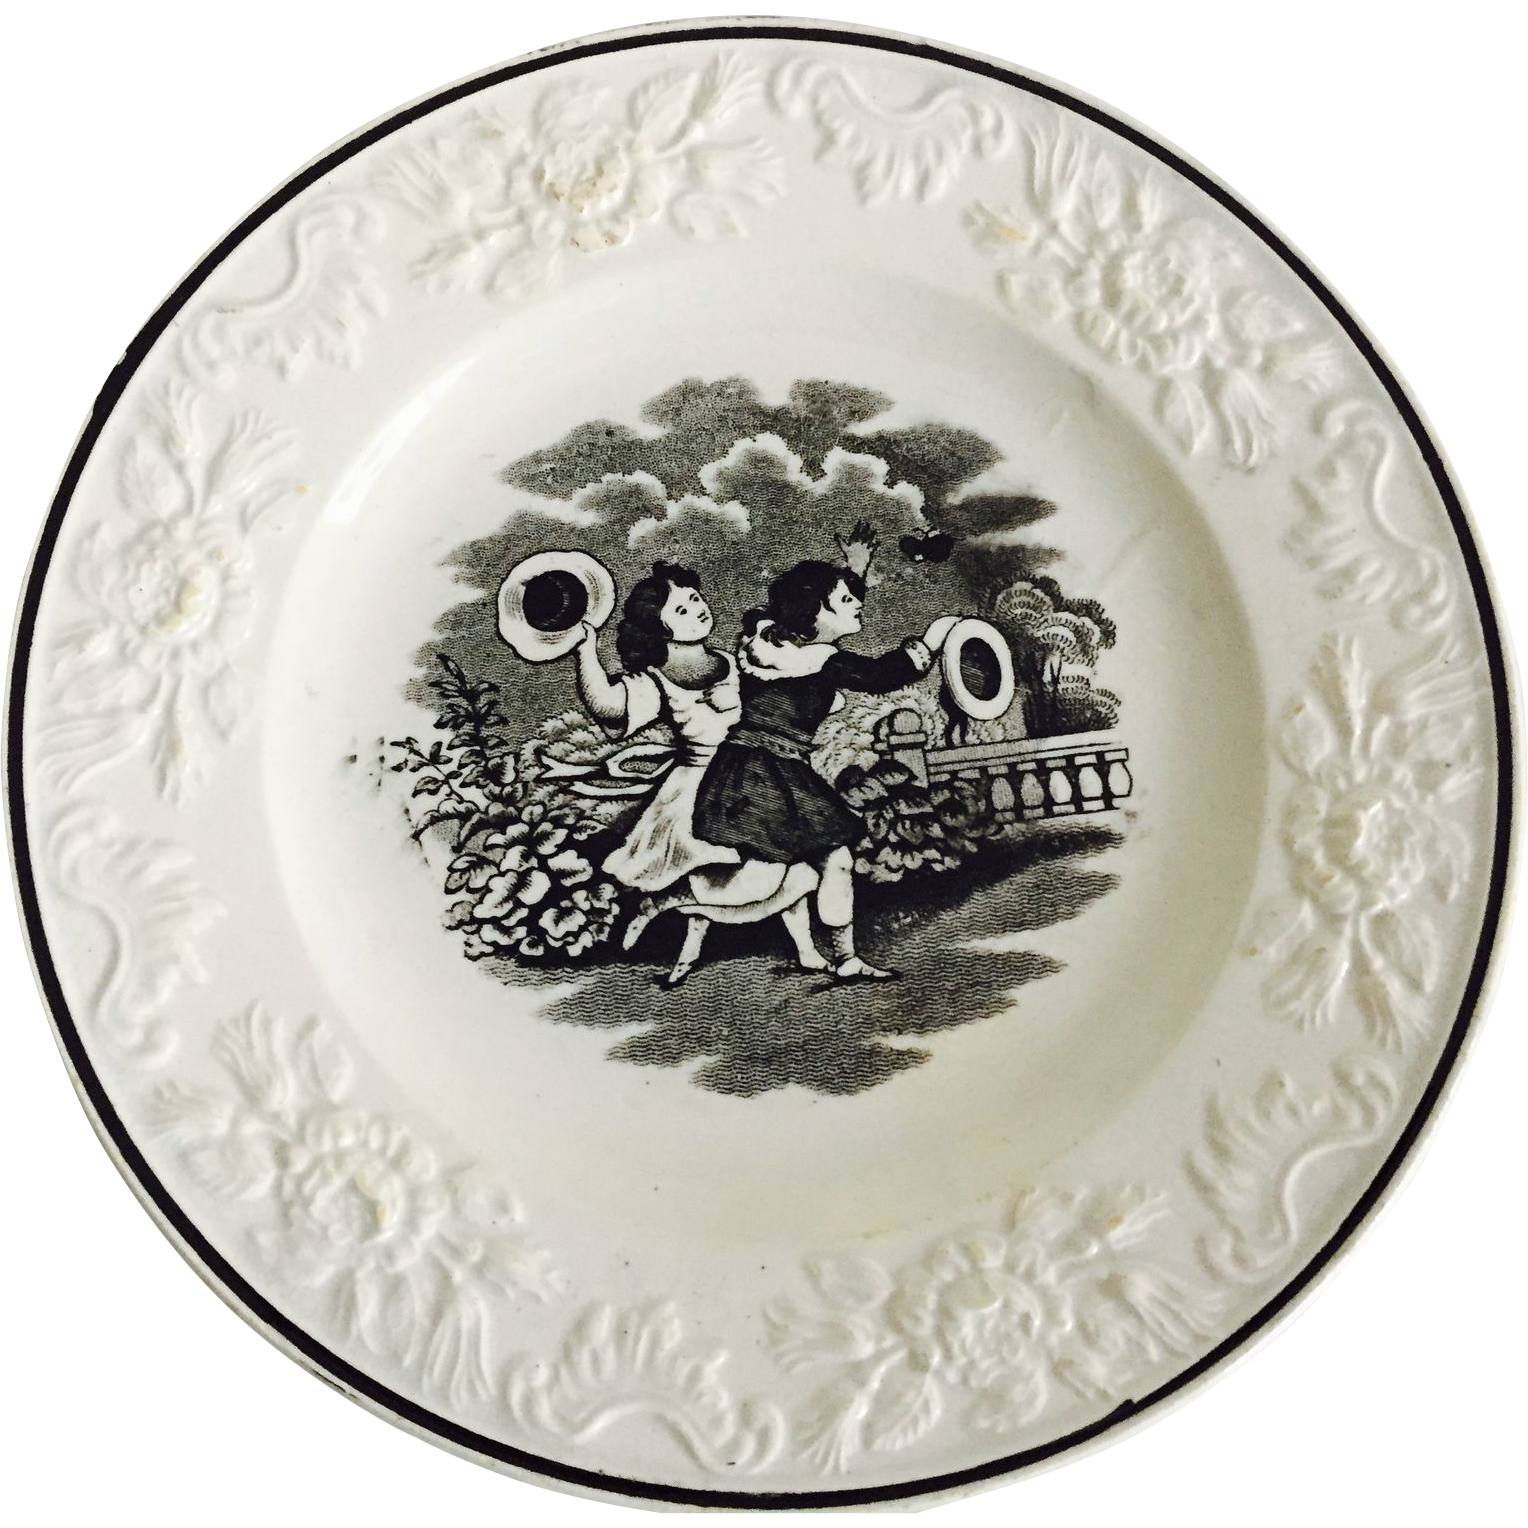 C.1850 English Black and White Transfer Plate, Chasing Butterflies